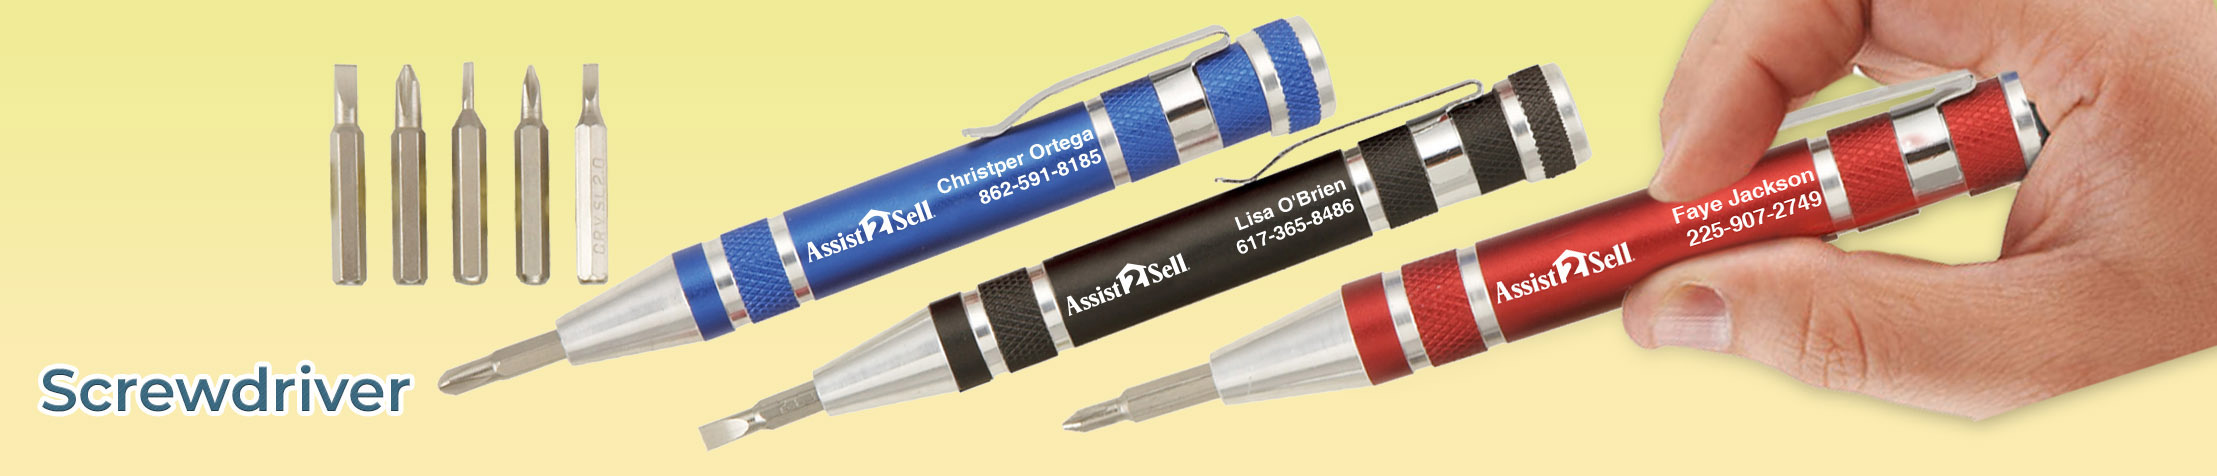 Assit2Sell Real Estate Screwdriver - Assit2Sell Real Estate personalized realtor promotional products | BestPrintBuy.com